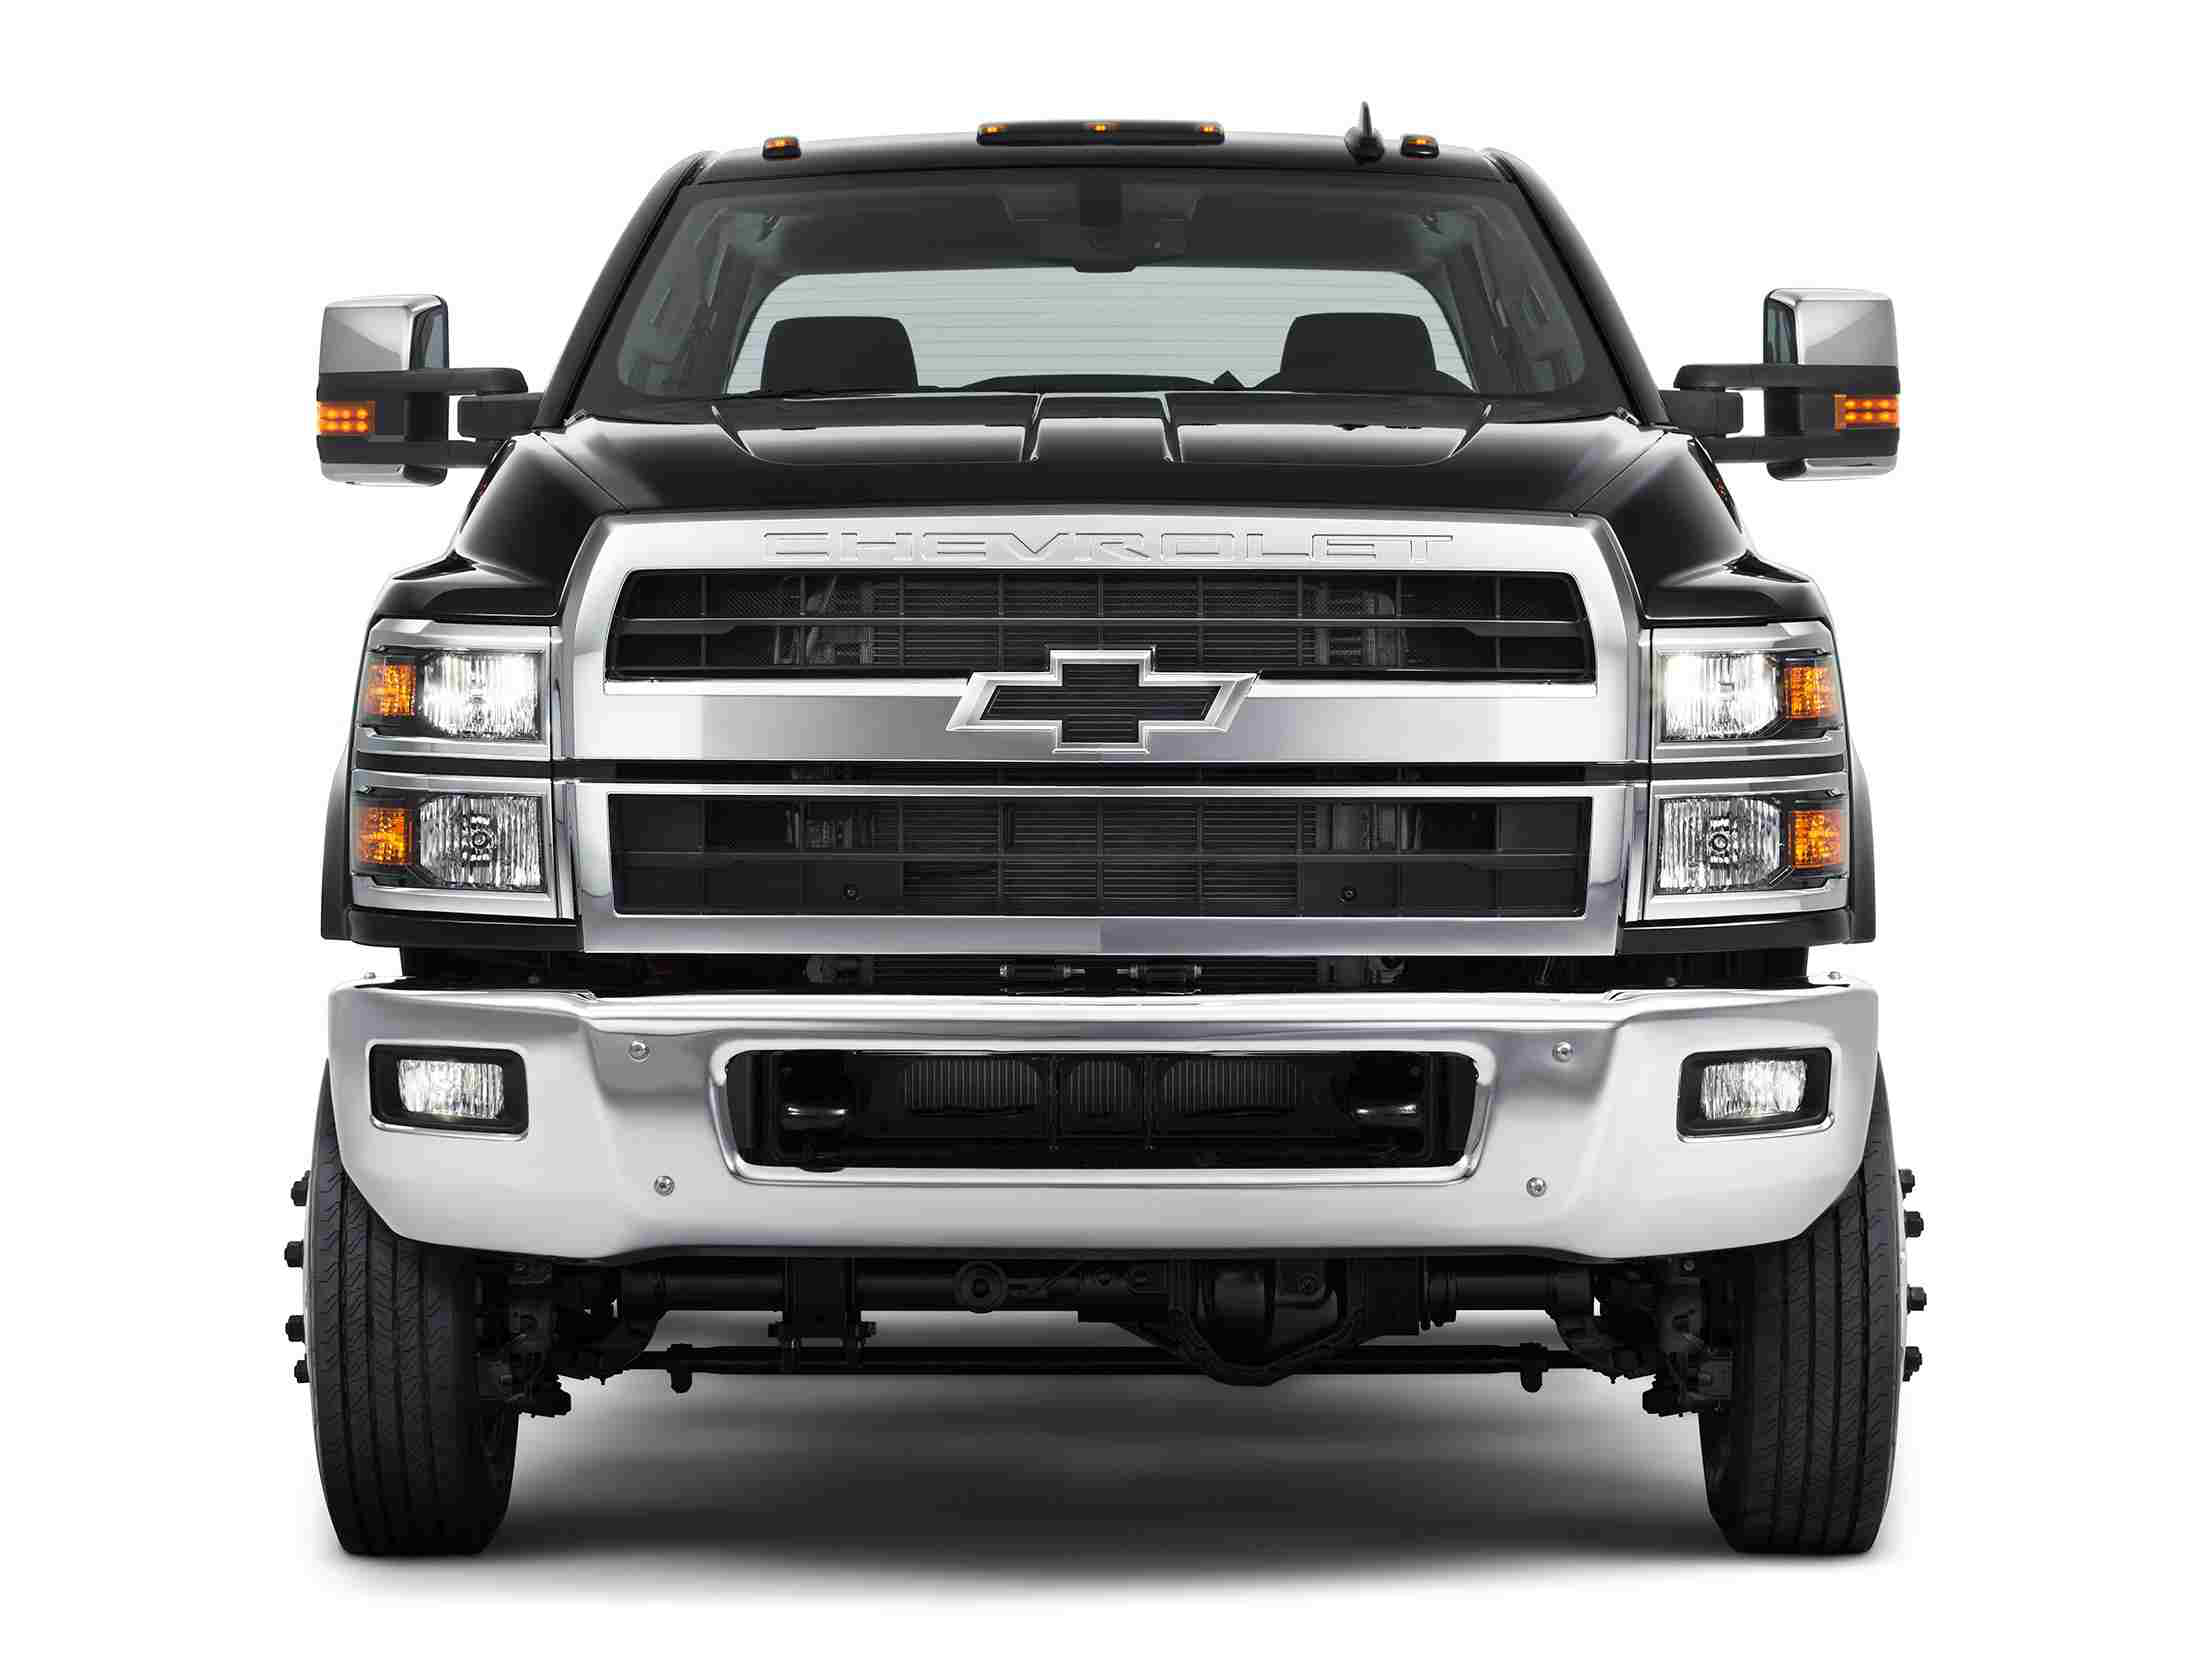 Chevy unveils Silverado 4500HD, 5500HD, and 6500HD